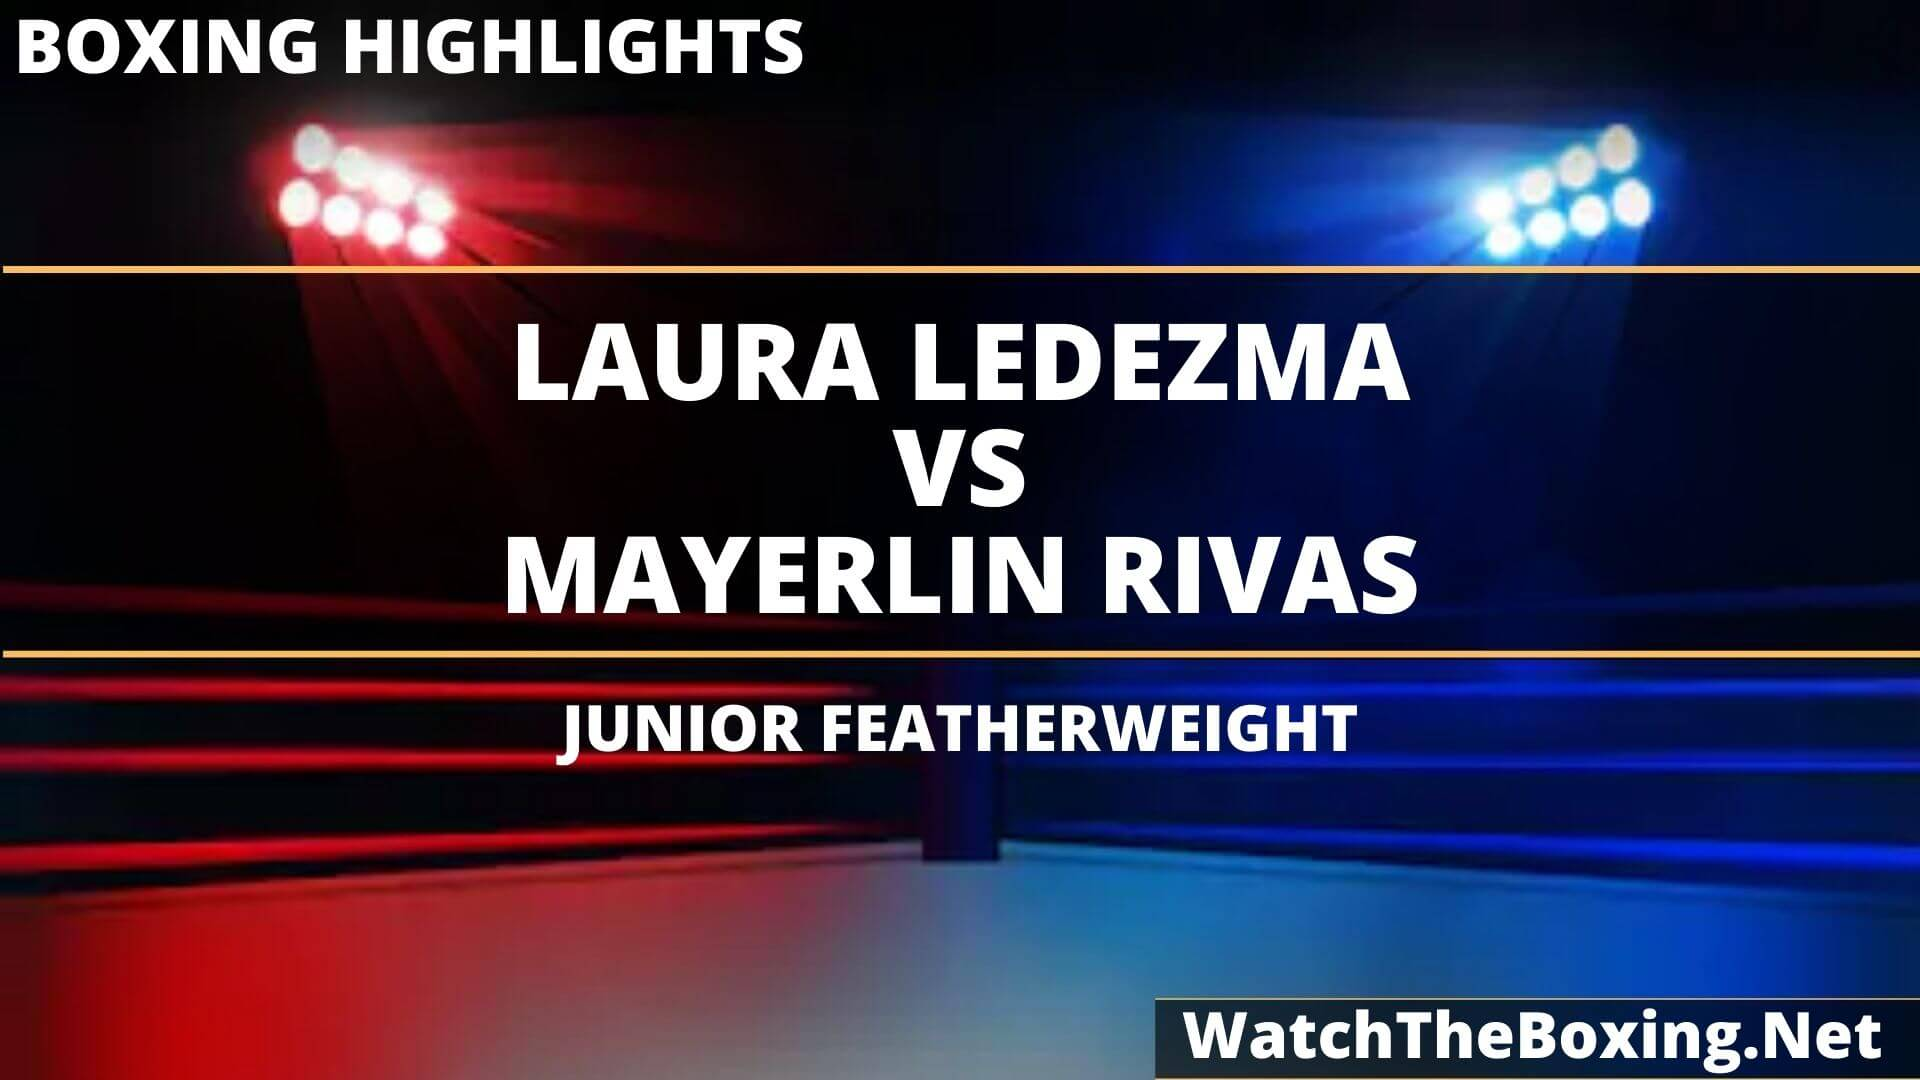 Laura Ledezma Vs Mayerlin Rivas Highlights 2020